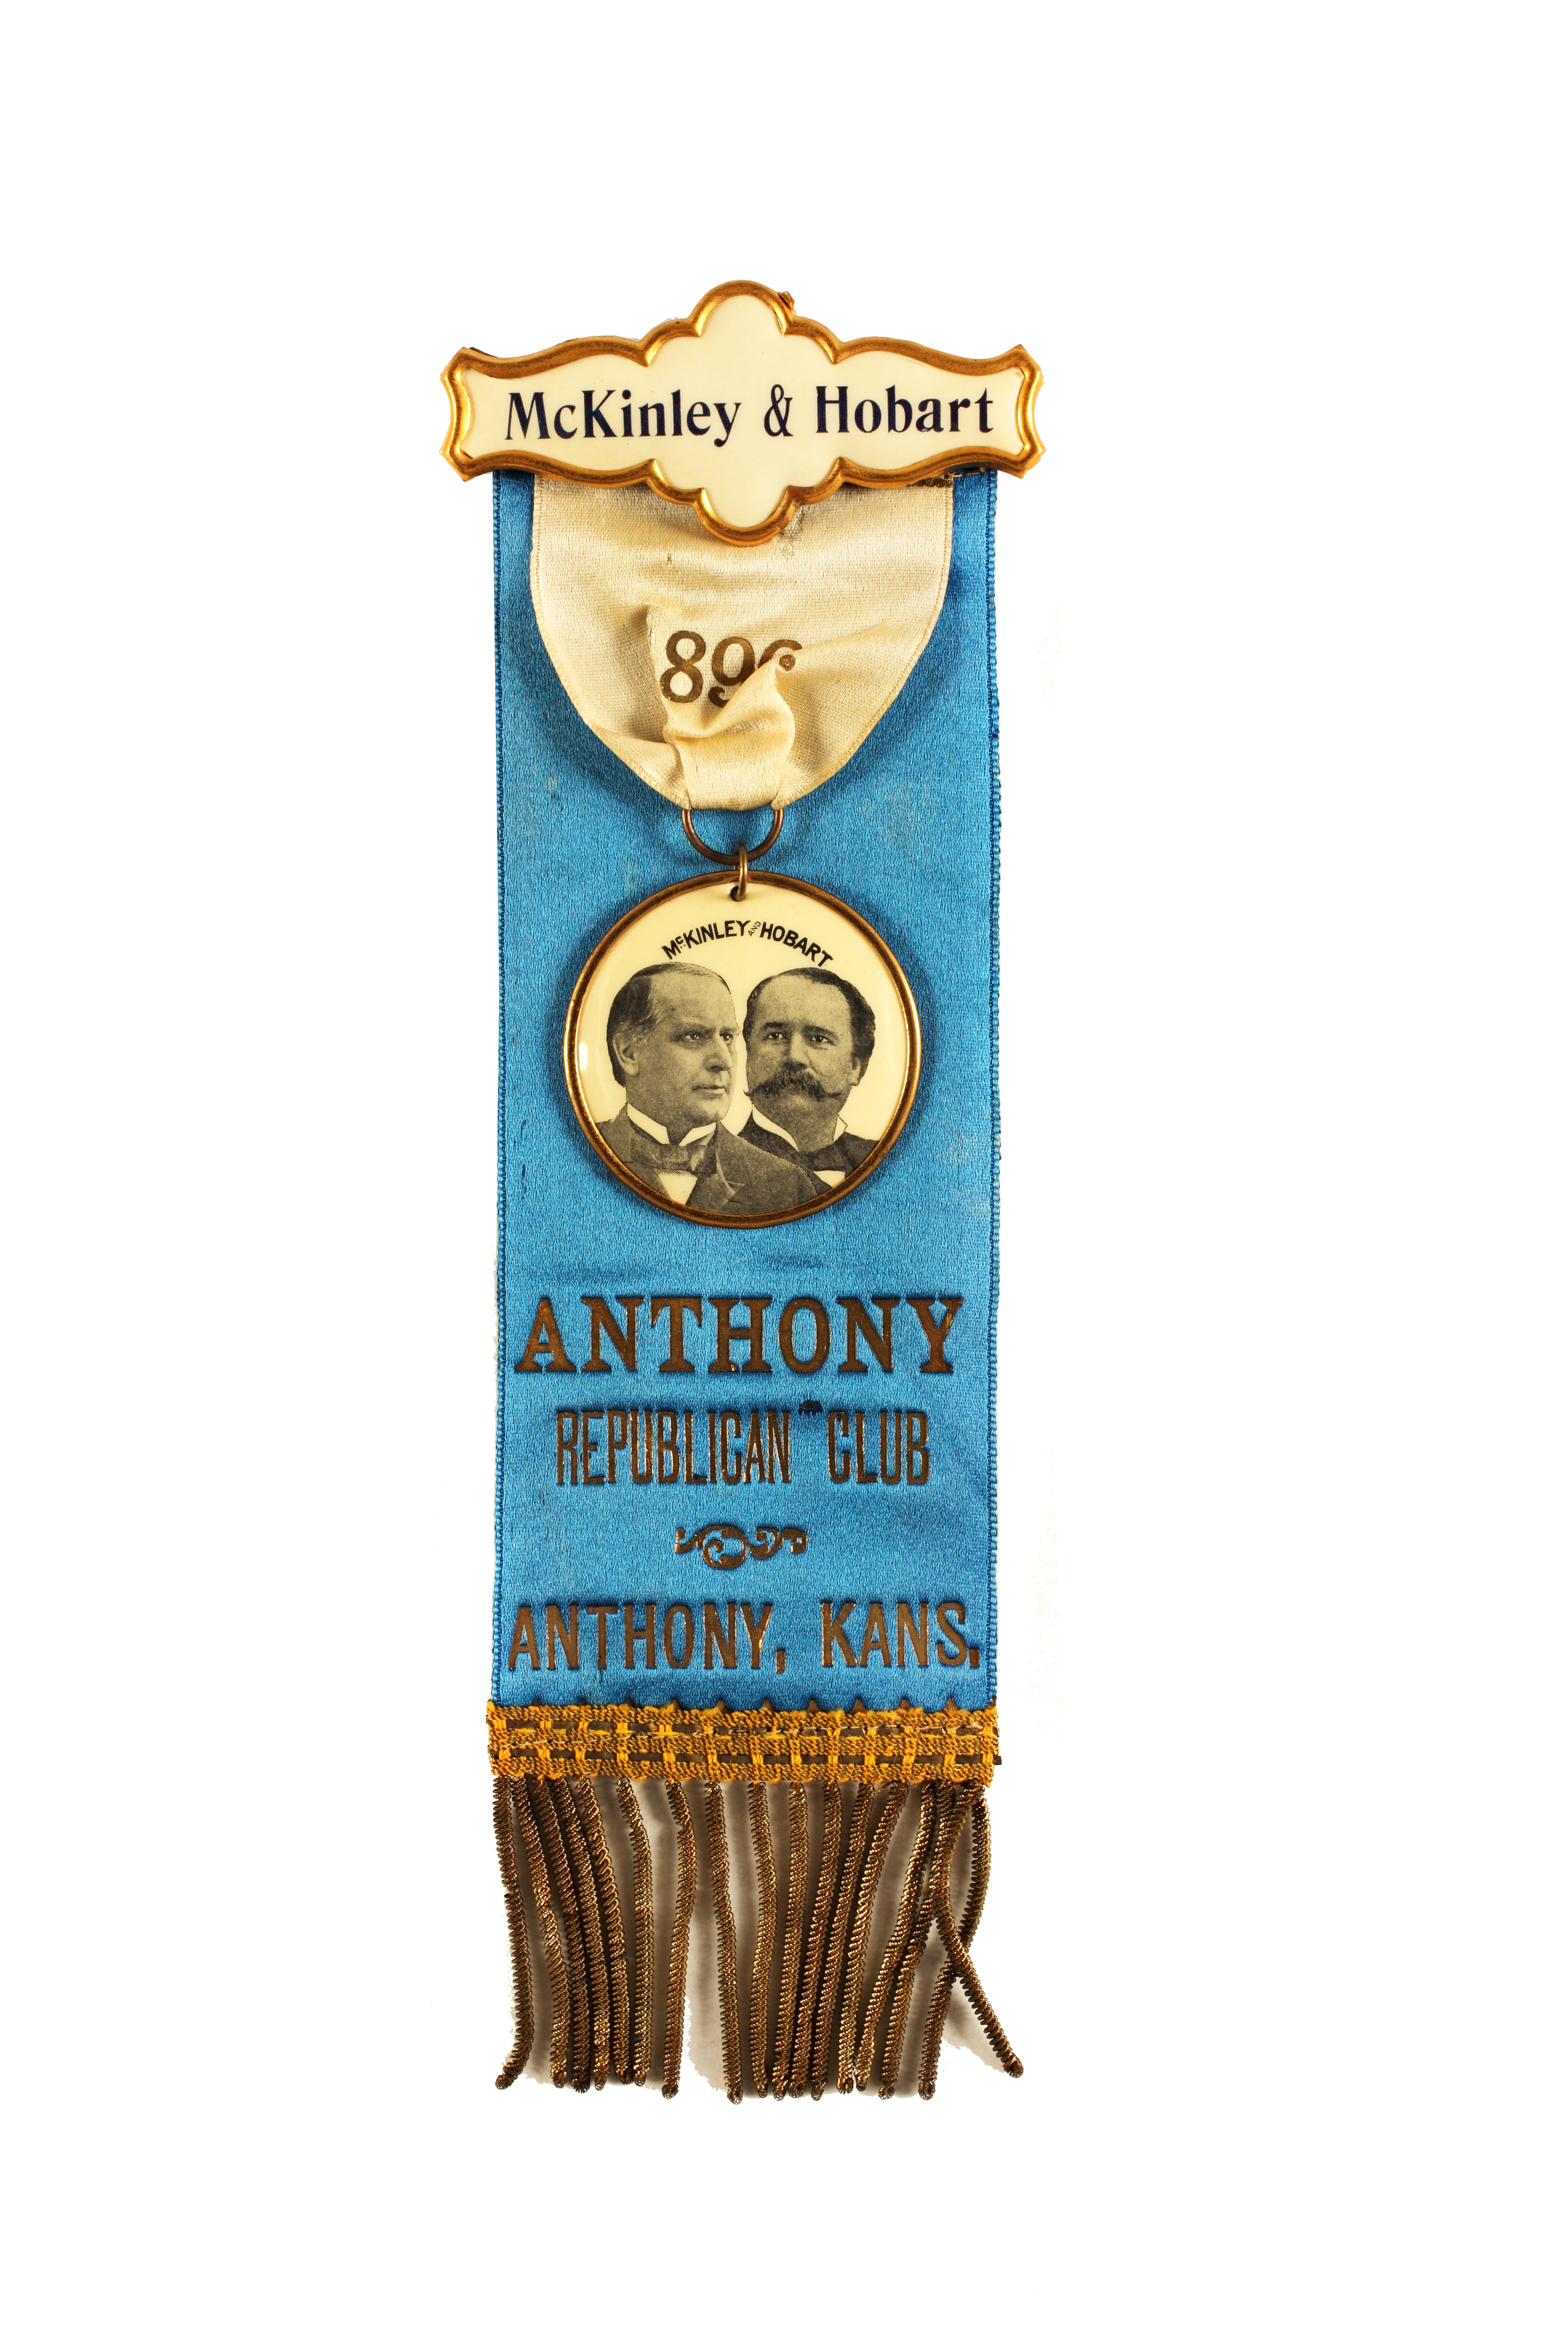 McKinley and Hobart ribbon